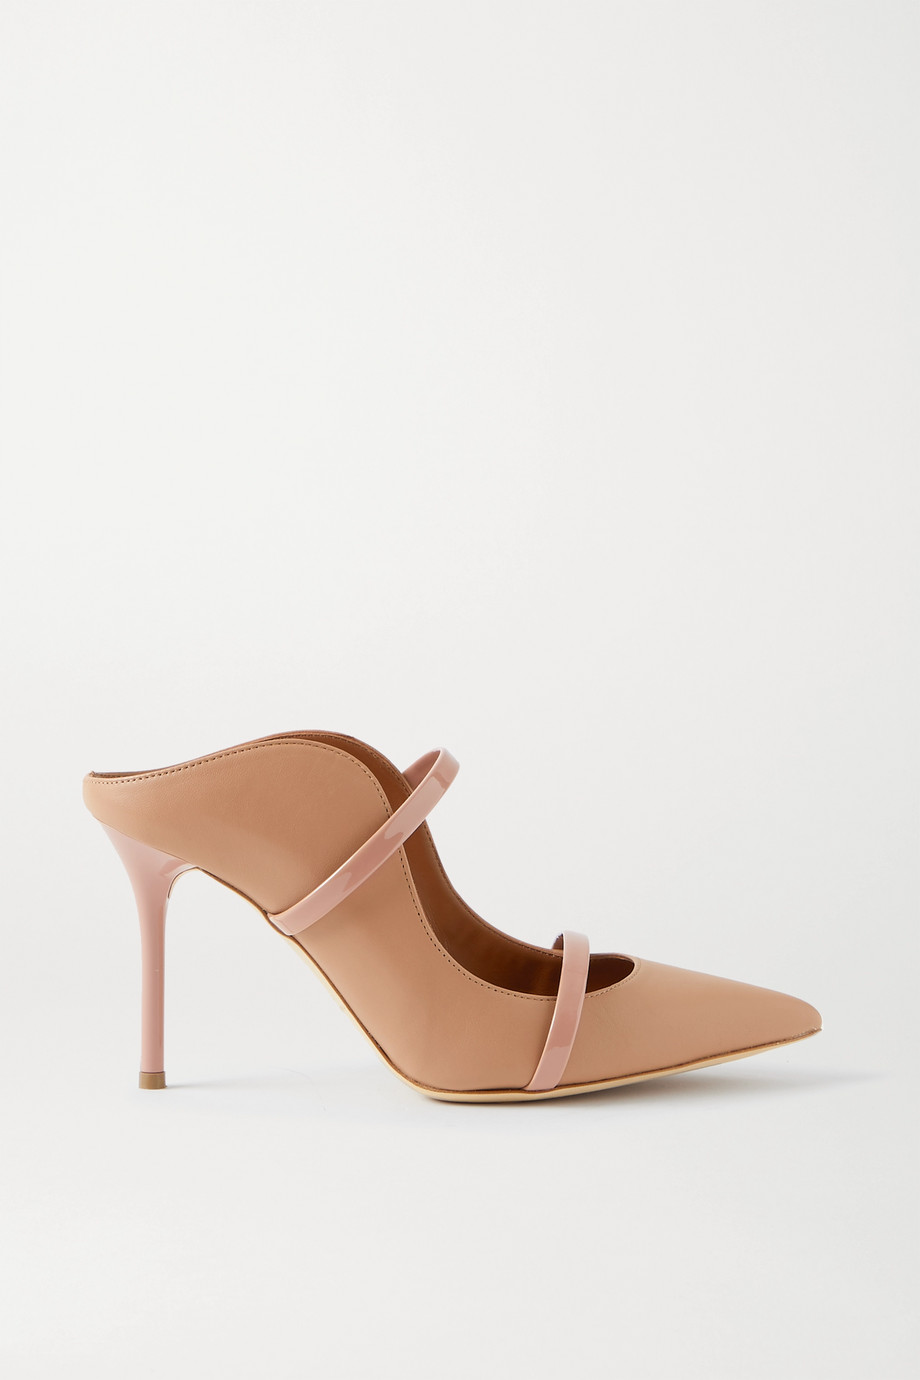 Malone Souliers Maureen 85 patent-trimmed leather mules